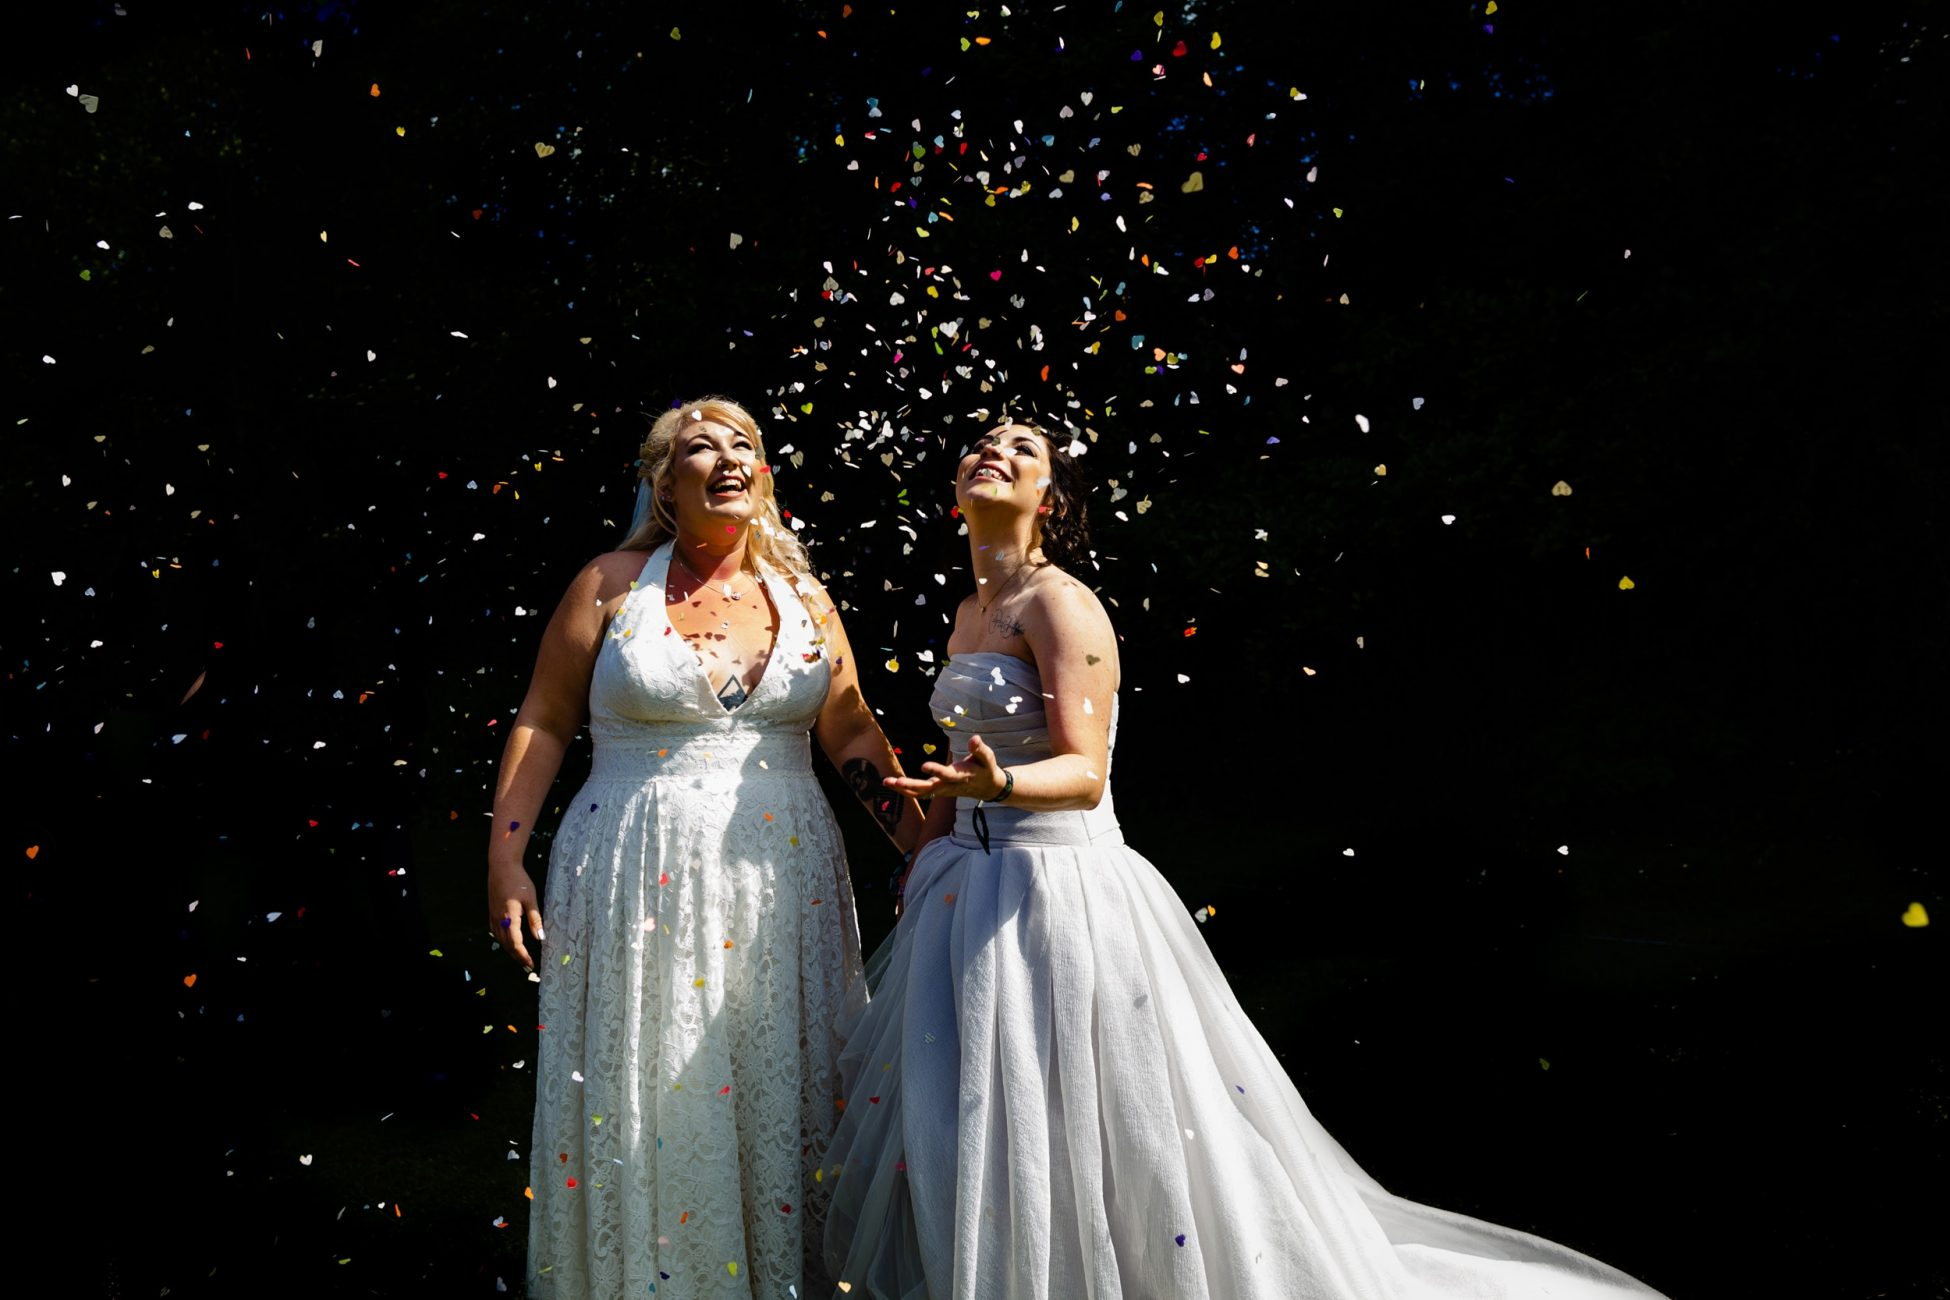 two brides stand in shower of confetti. plough inn, hathersage wedding photography by emma and rich.